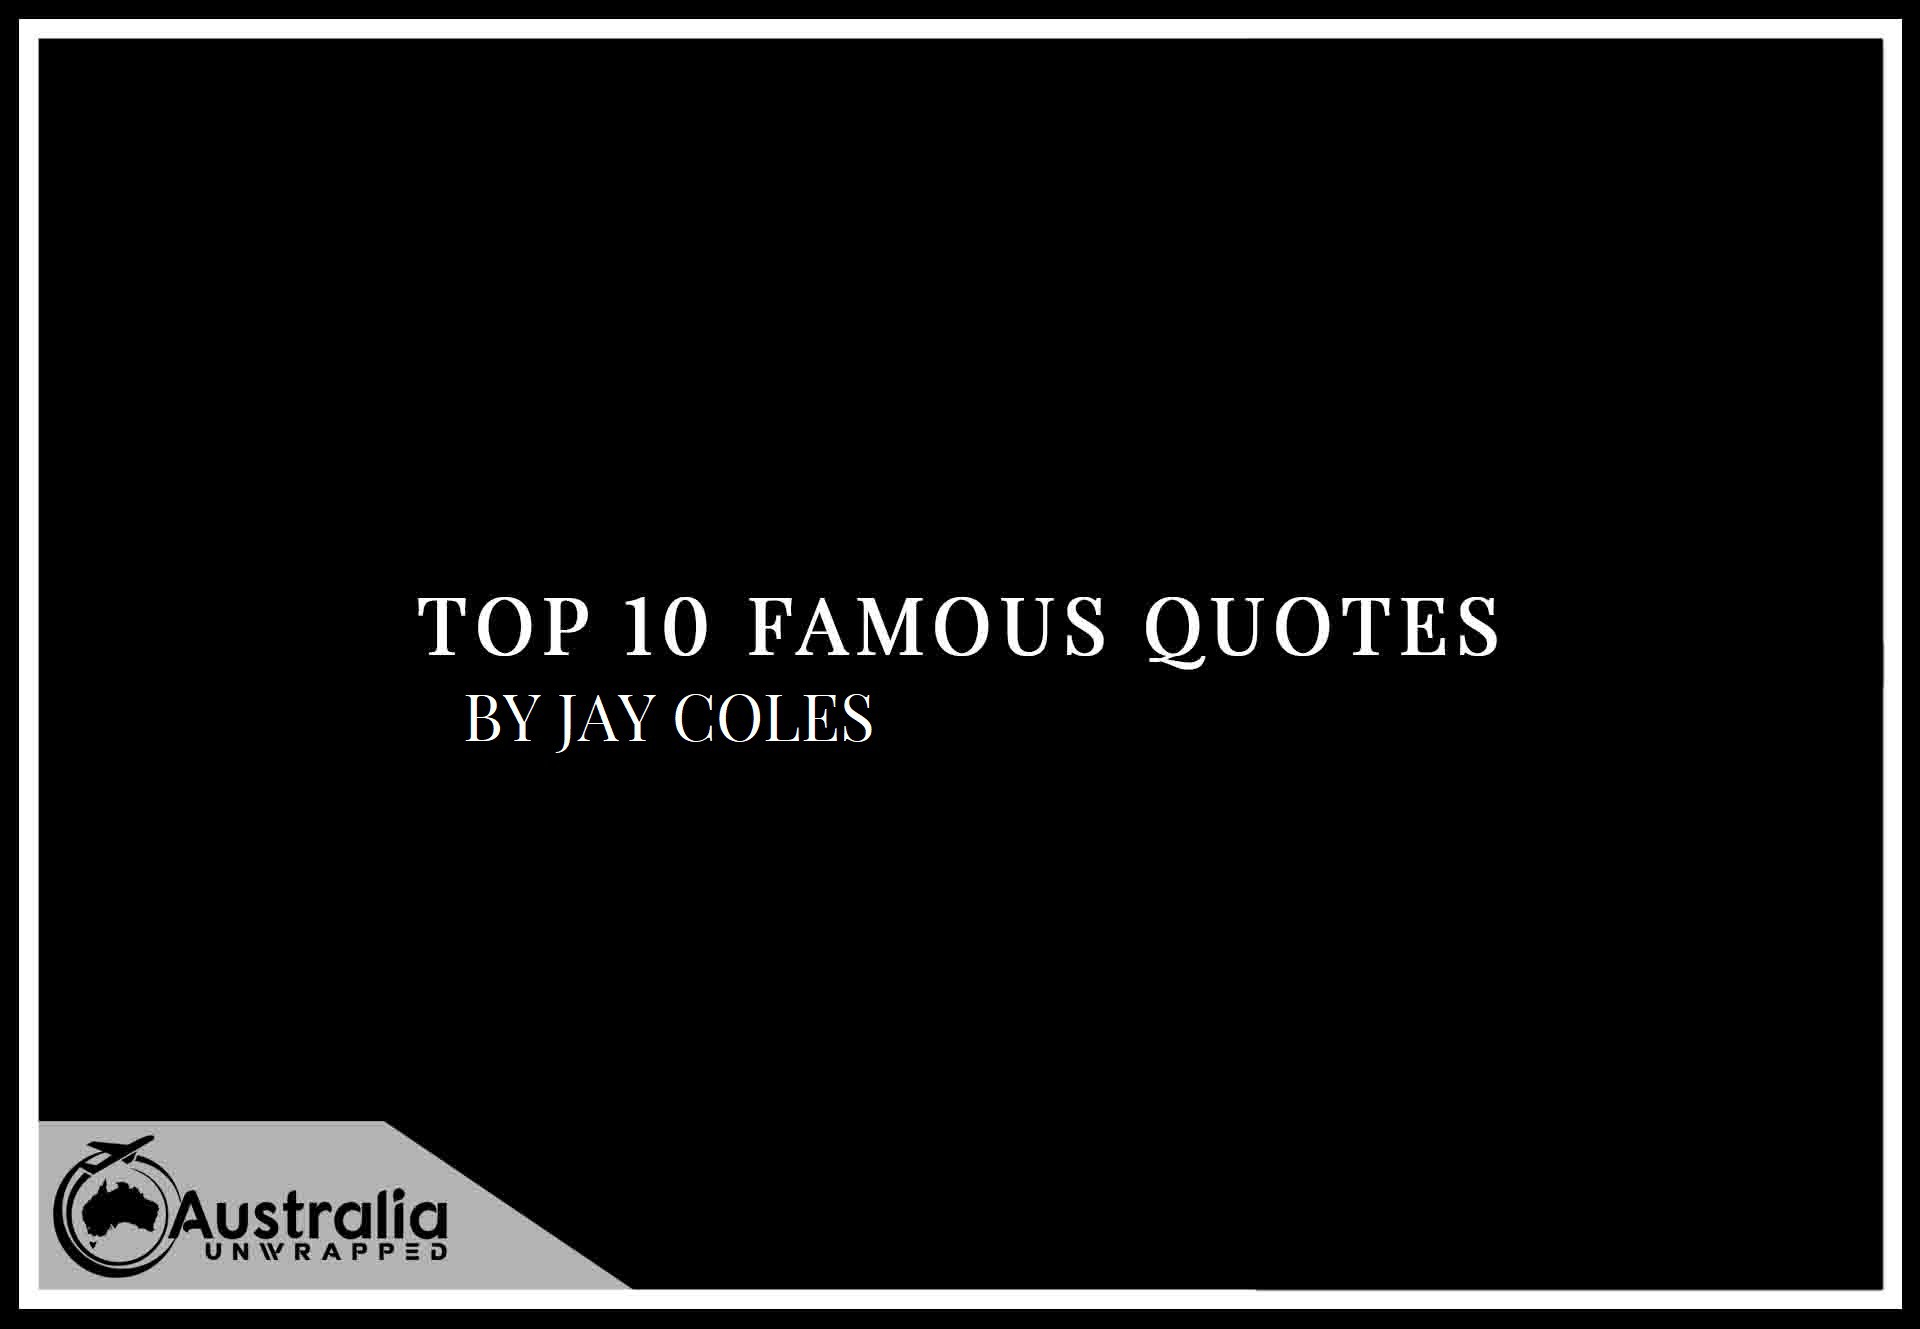 Top 10 Famous Quotes by Author Jay Coles